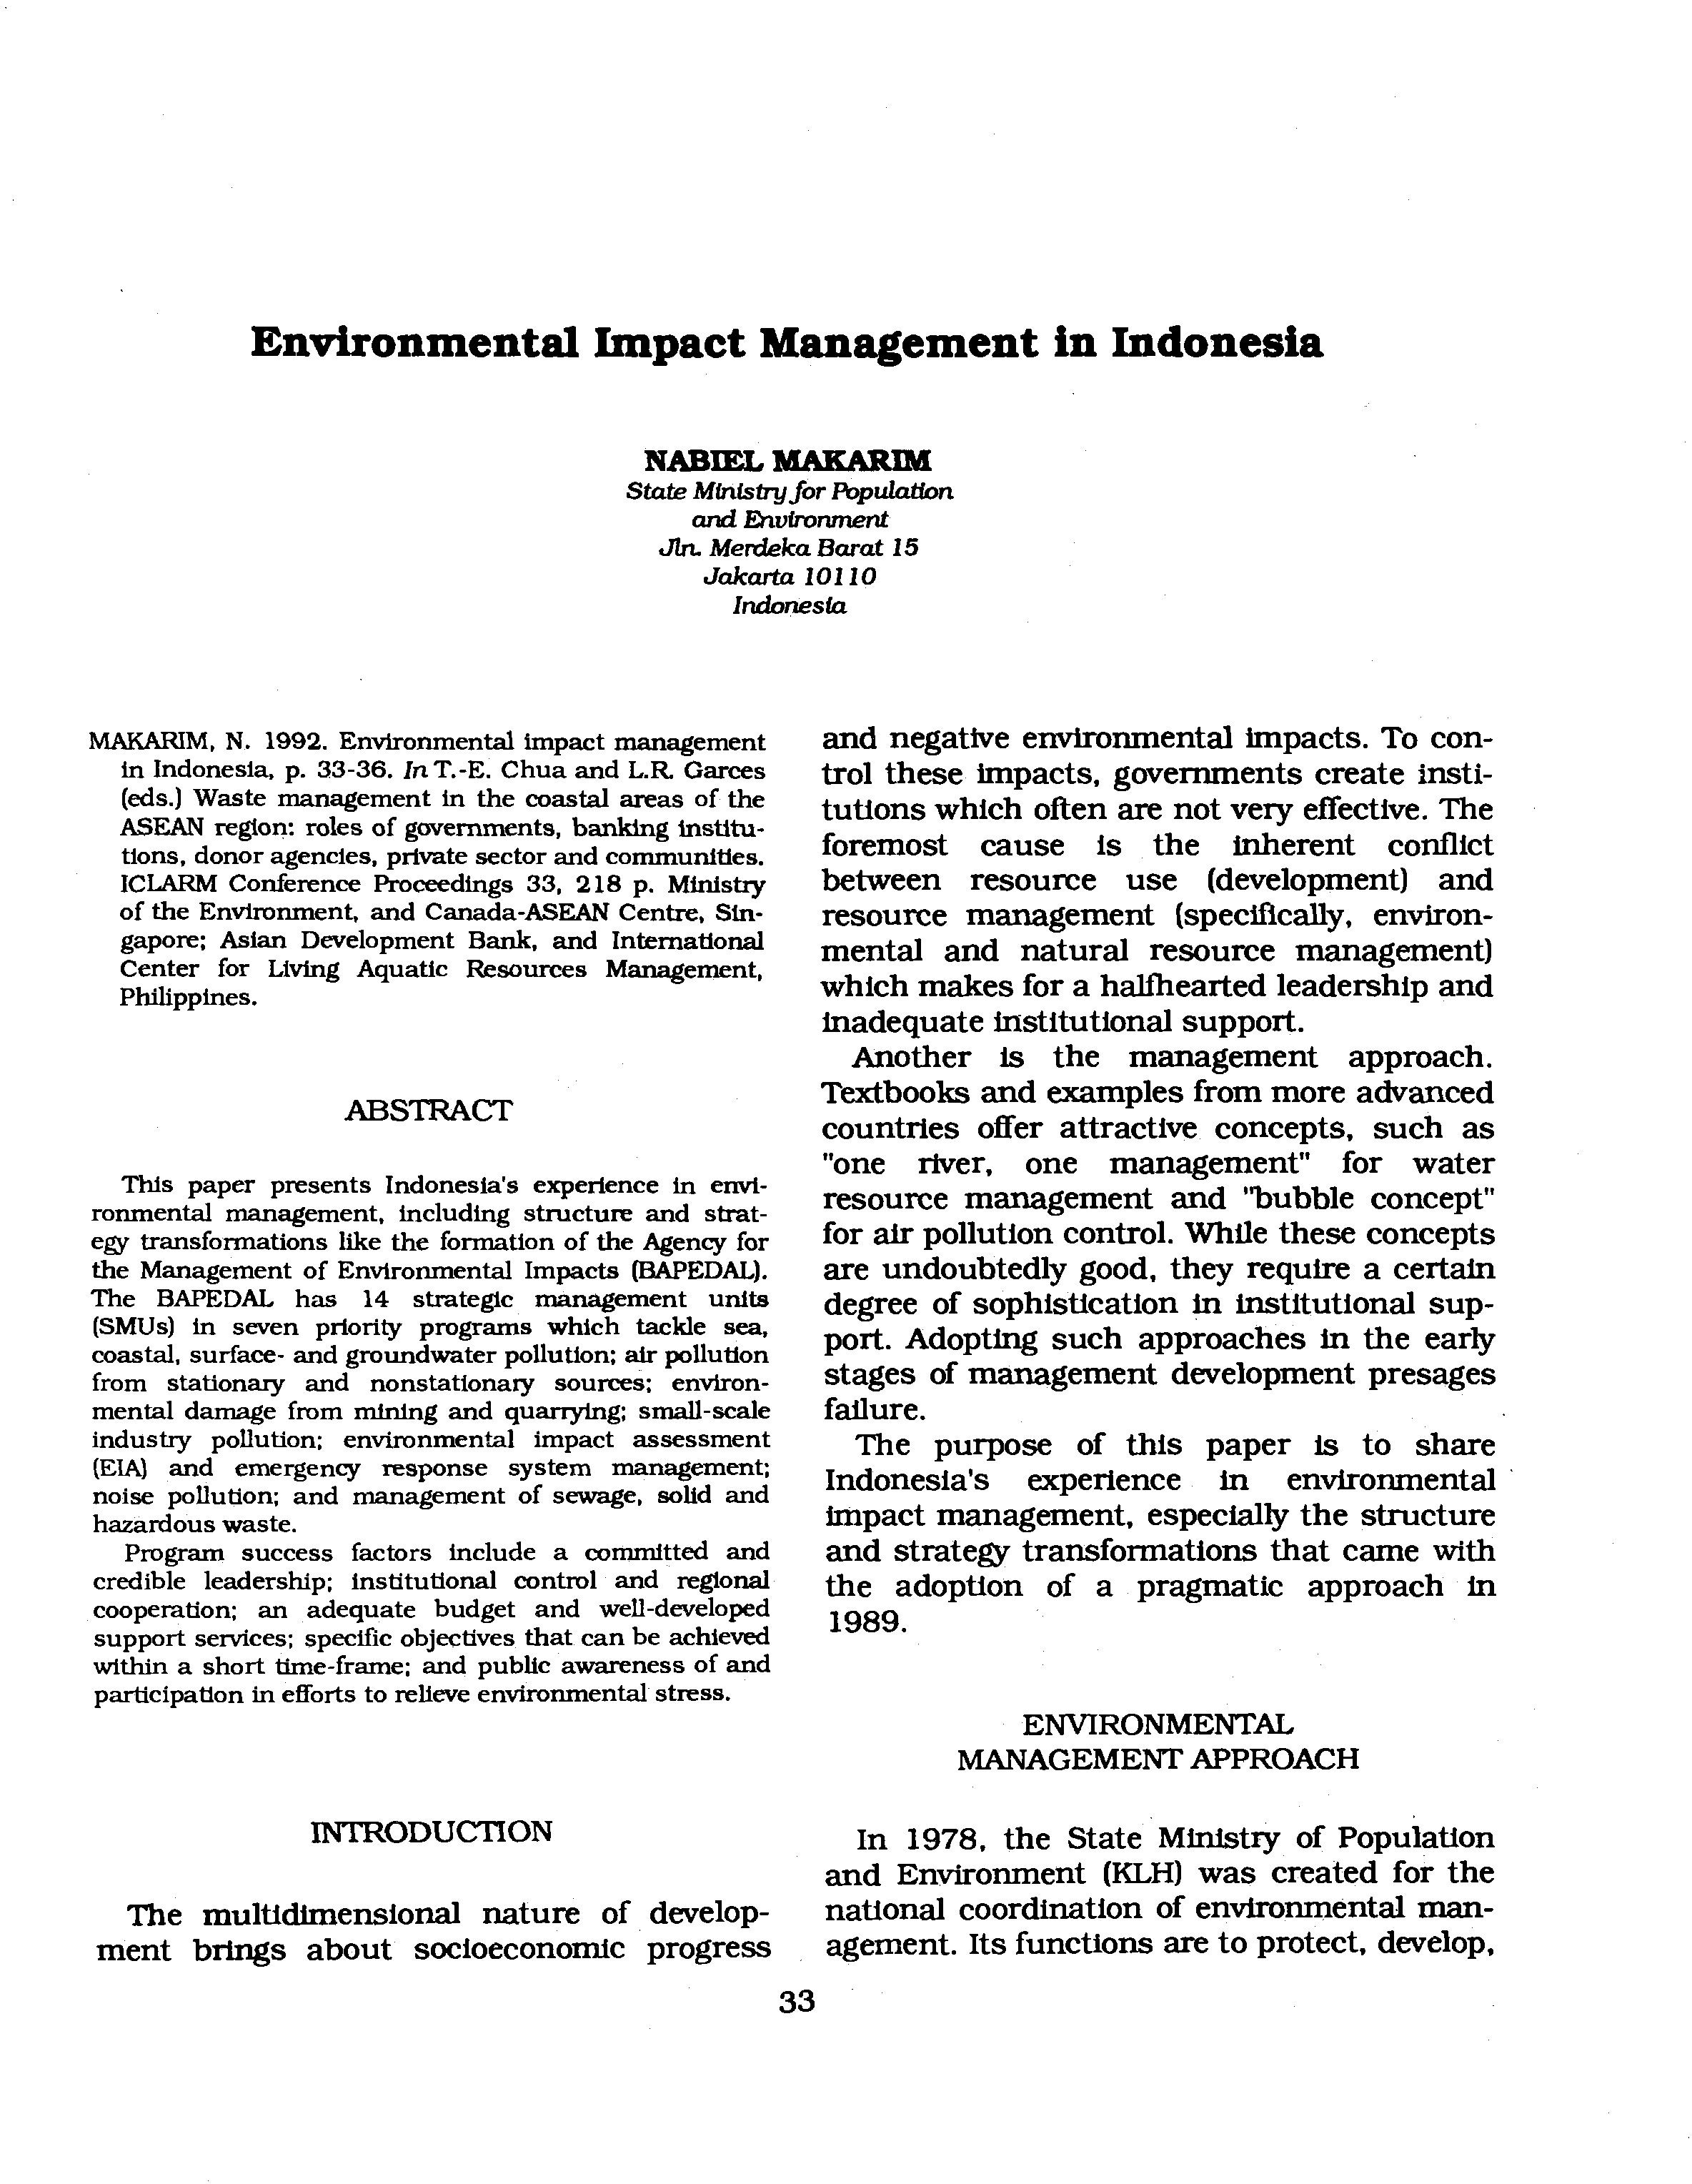 Waste Management In The Coastal Areas Of Asean Region Pdf Tendencies Caps Black Pop Hitam Environmental Impact Indonesia Nabiel Makarim State Mfnlstry For Population And Ehvironment Jln Merdeka Barat